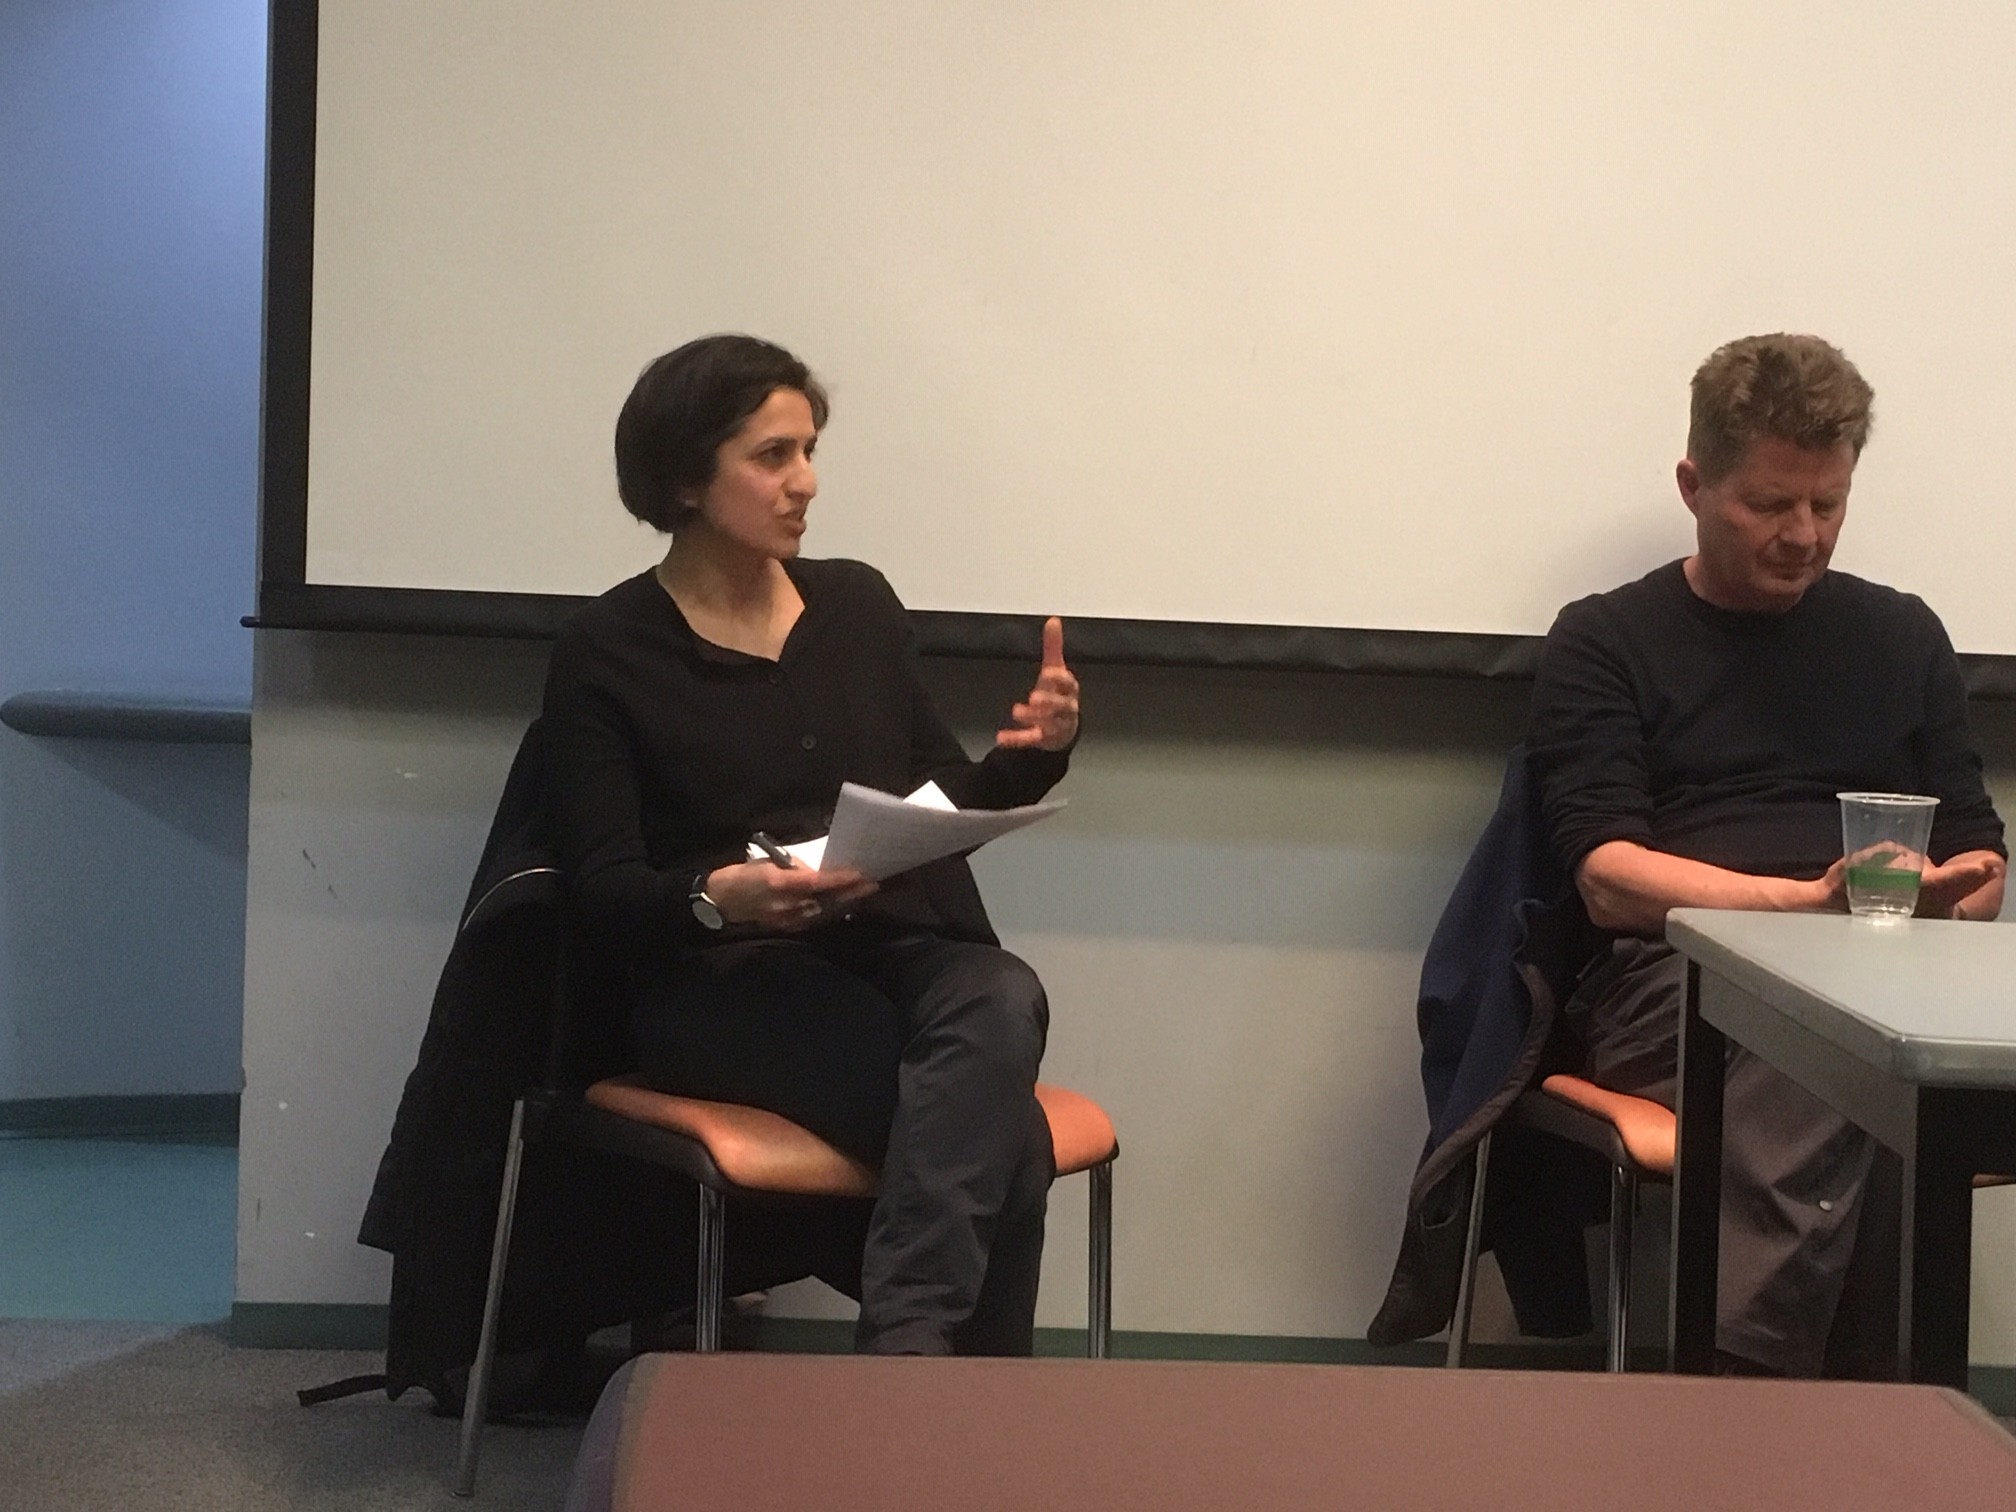 Colonial Lives of Property Panel - SFU Harbour Centre - April 9, 2019 (4).JPG